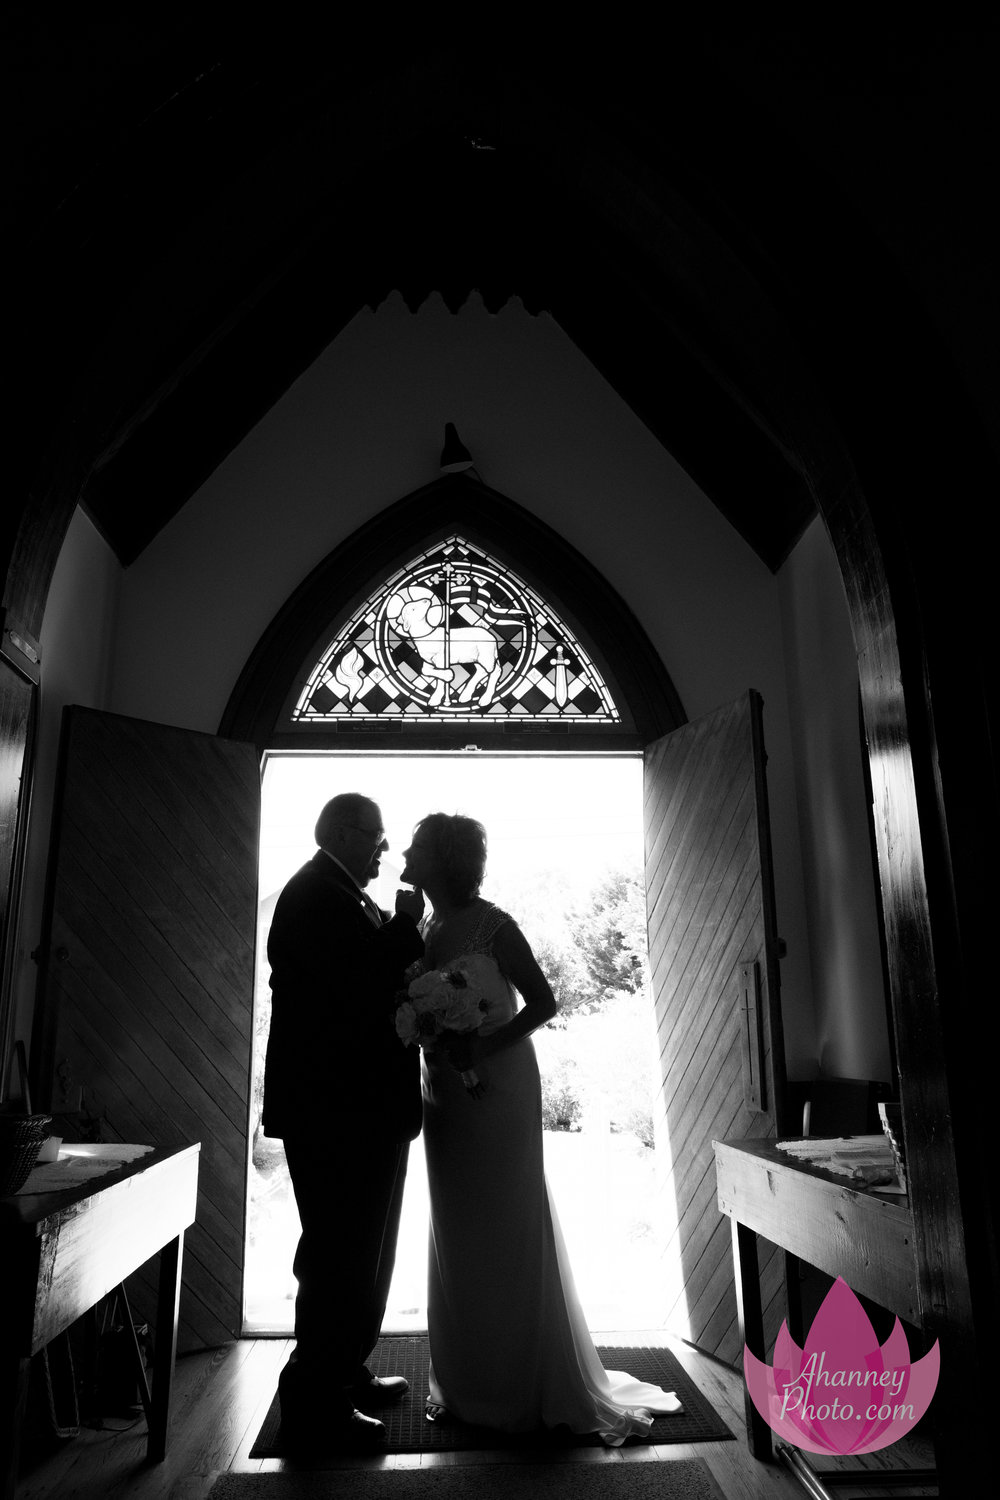 Wedding Groom Bride Doorway ChurchThe Grand Hotel Cape May New Jersey Philadelphia Delaware Anastasia Hanney Photography AHanneyPhoto